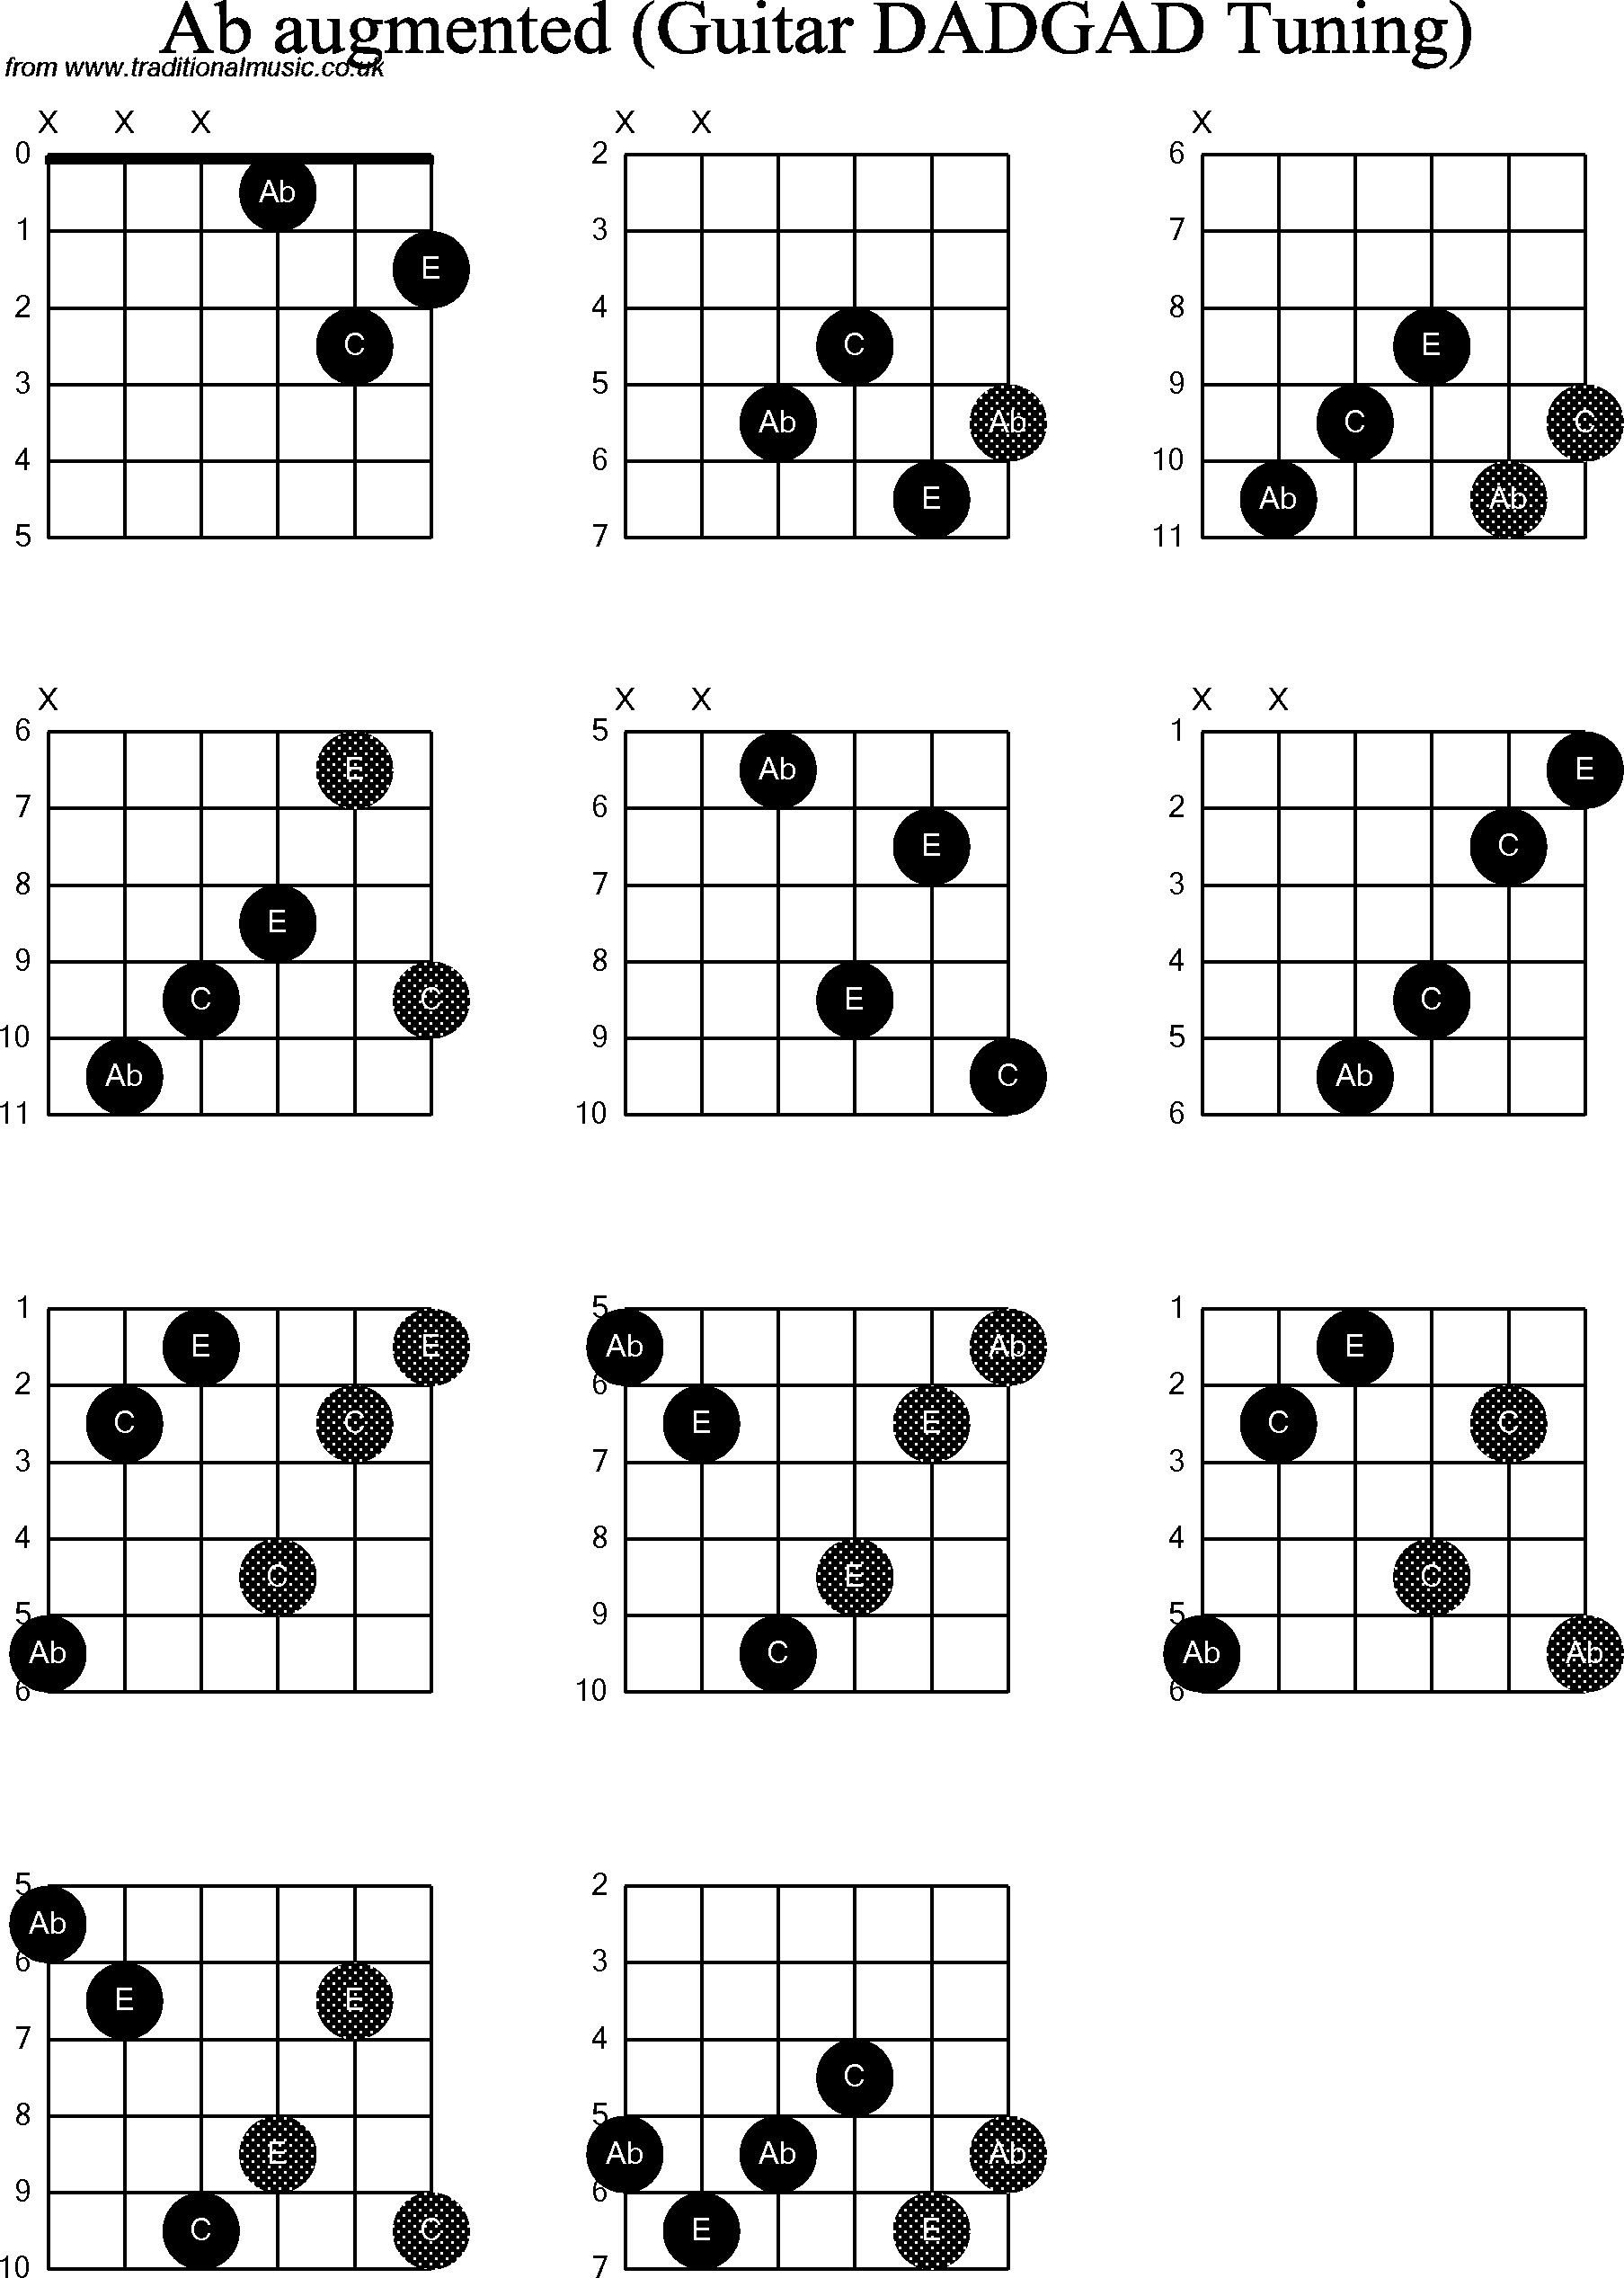 Chord Diagrams D Modal Guitar Dadgad Ab Augmented